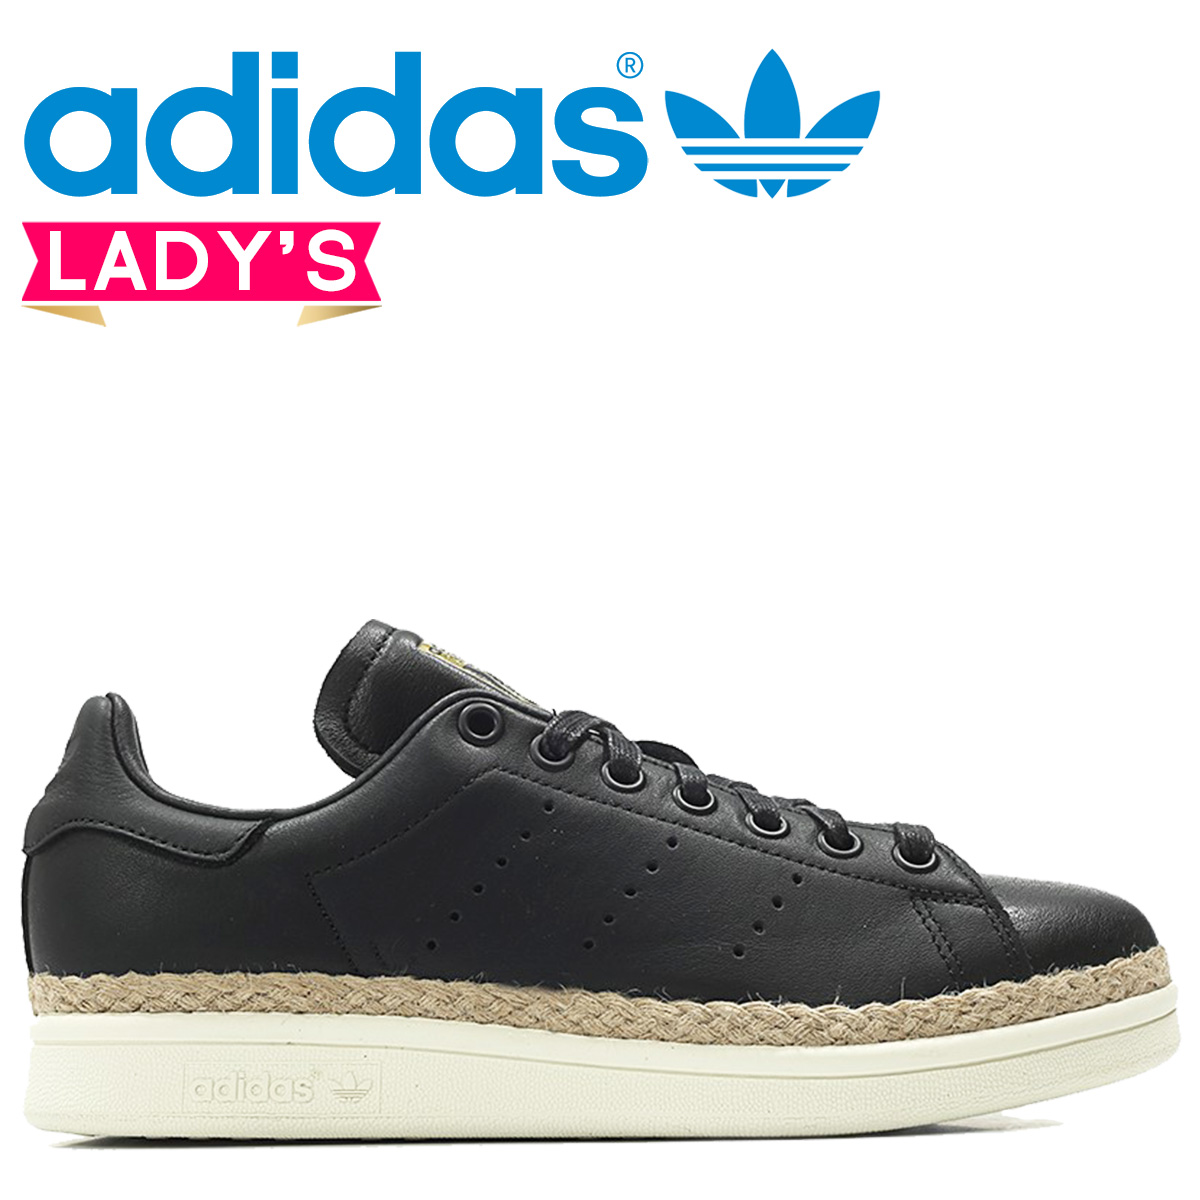 Details zu ADIDAS Stan Smith Shoes New Bold W Espadrilles Black Sneakers DA9536 Women's